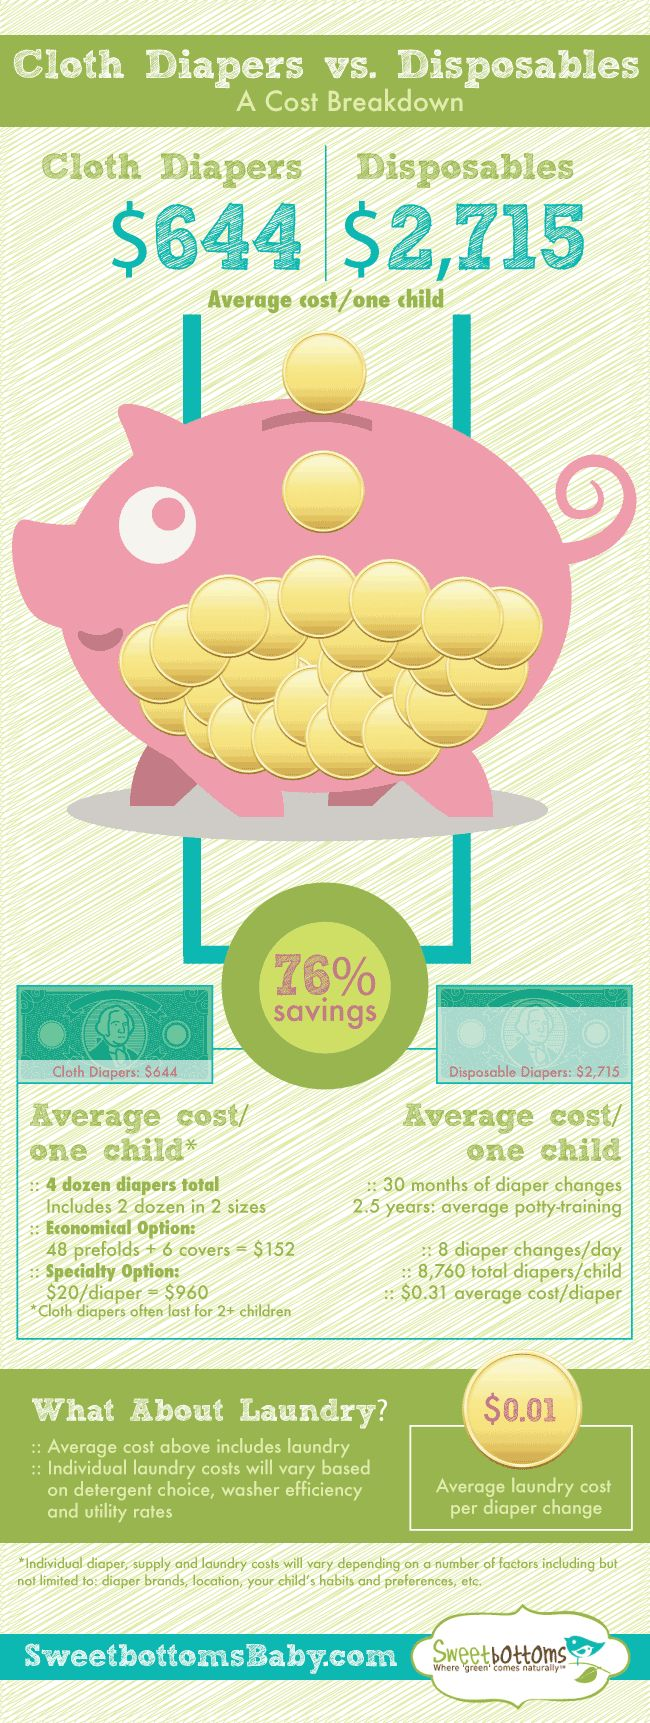 Cloth Diapers: Breaking Down the Cost Savings - this infographic details the opportunity to save 76% by using cloth diapers instead of disposables